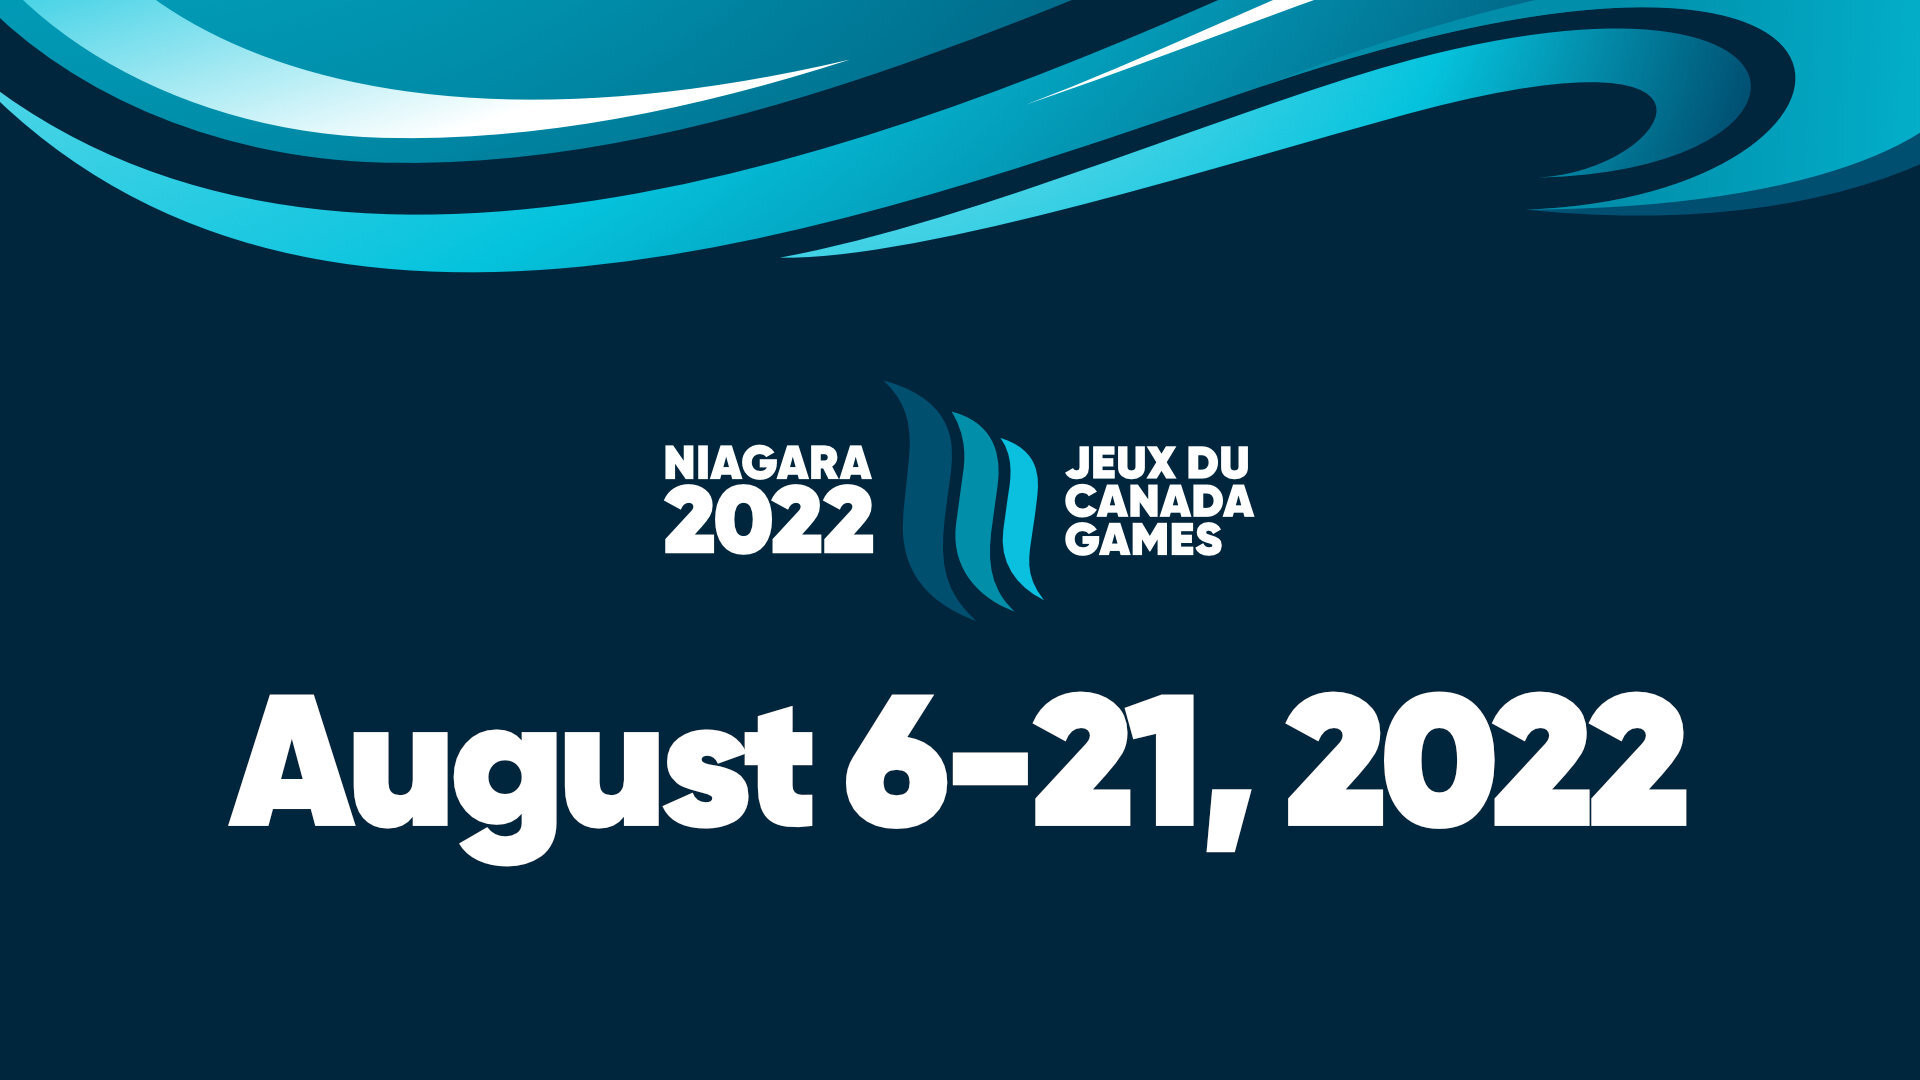 The Niagara 2022 Canada Summer Games have been rescheduled for August 6-21, 2022.